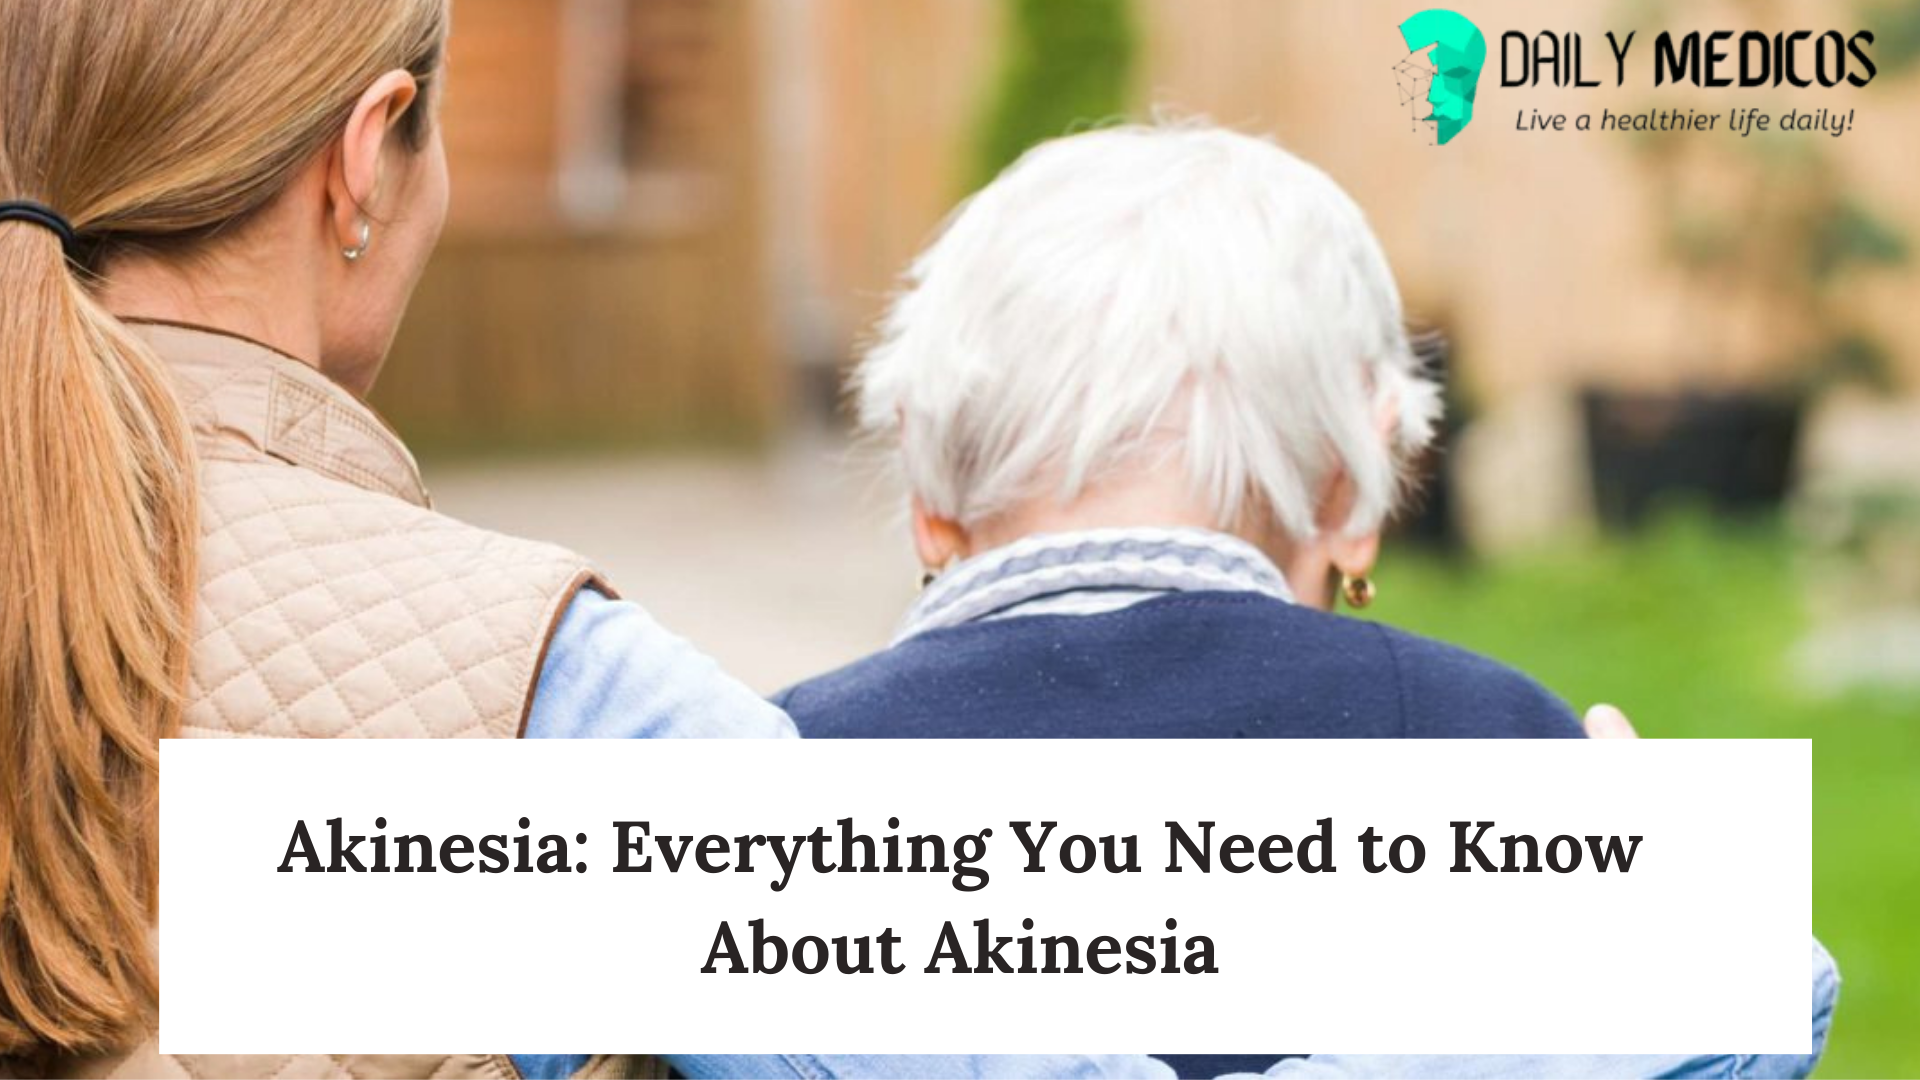 Akinesia: Everything You Need to Know About Akinesia [Causes, Symptoms, & Treatment] 1 - Daily Medicos